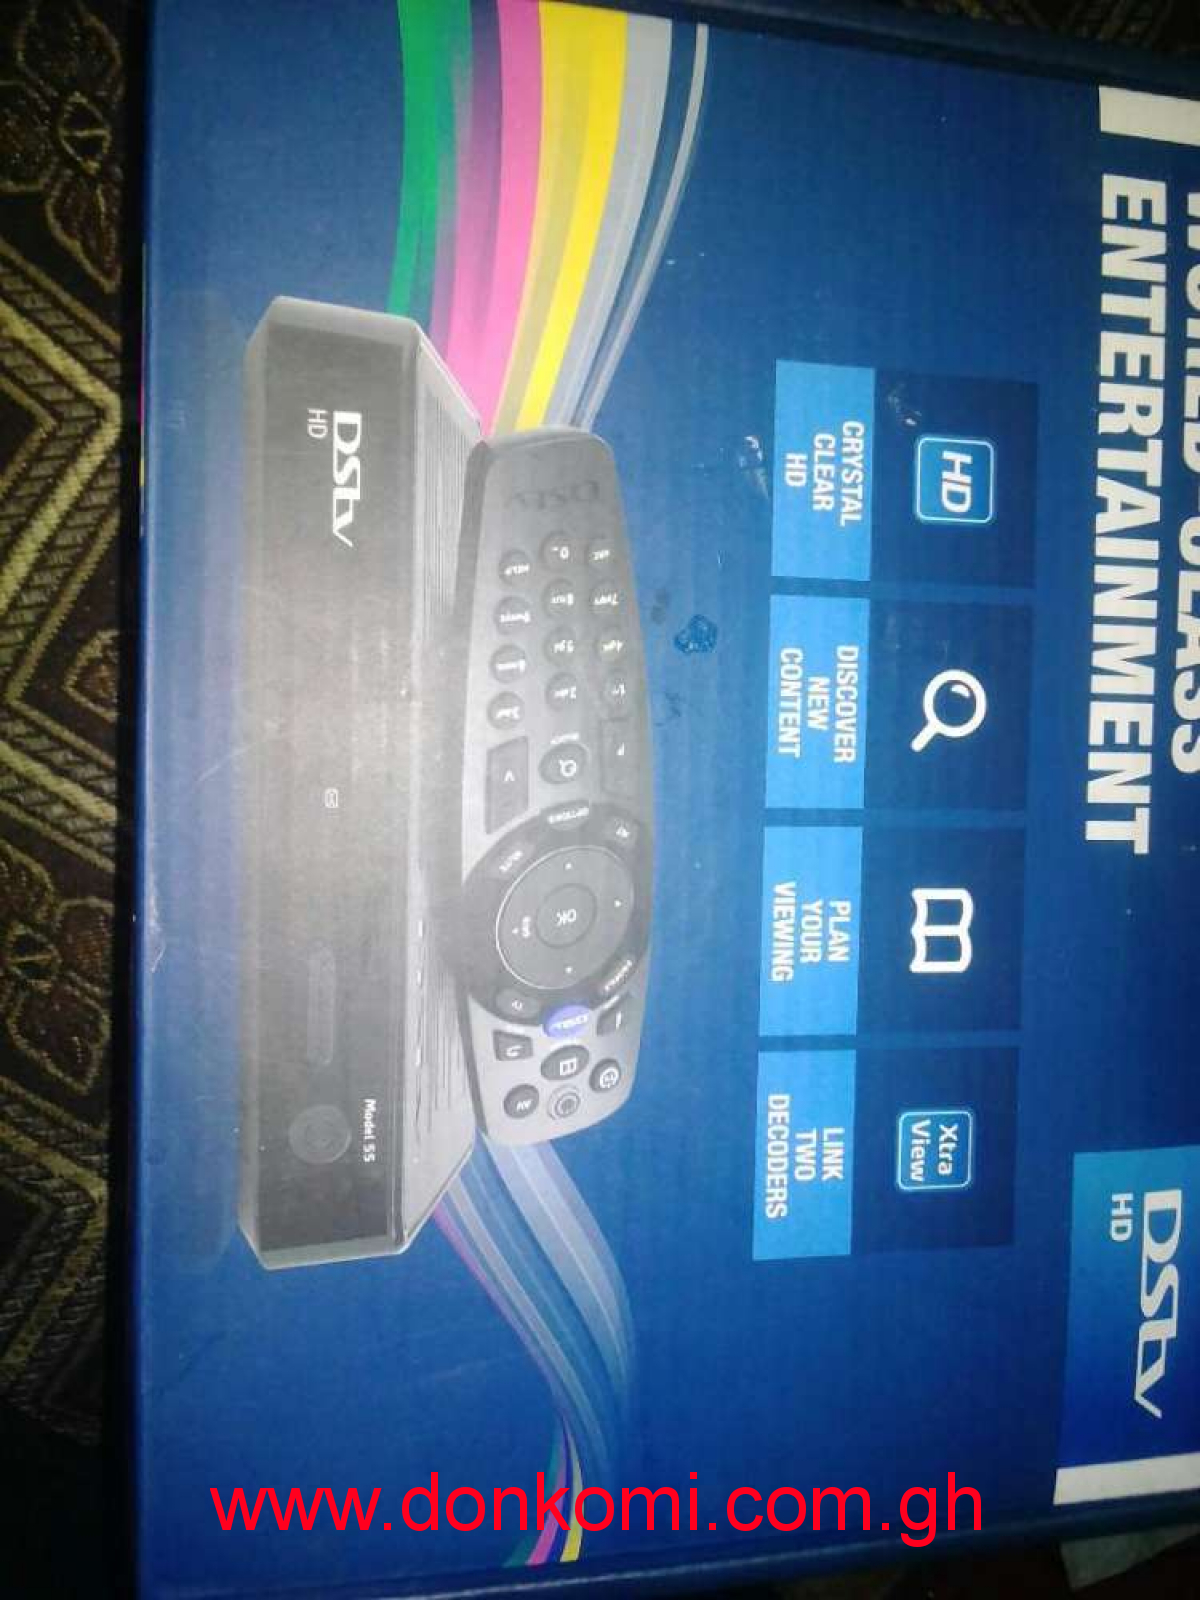 1:month used DSTV decoder fresh in the box with account